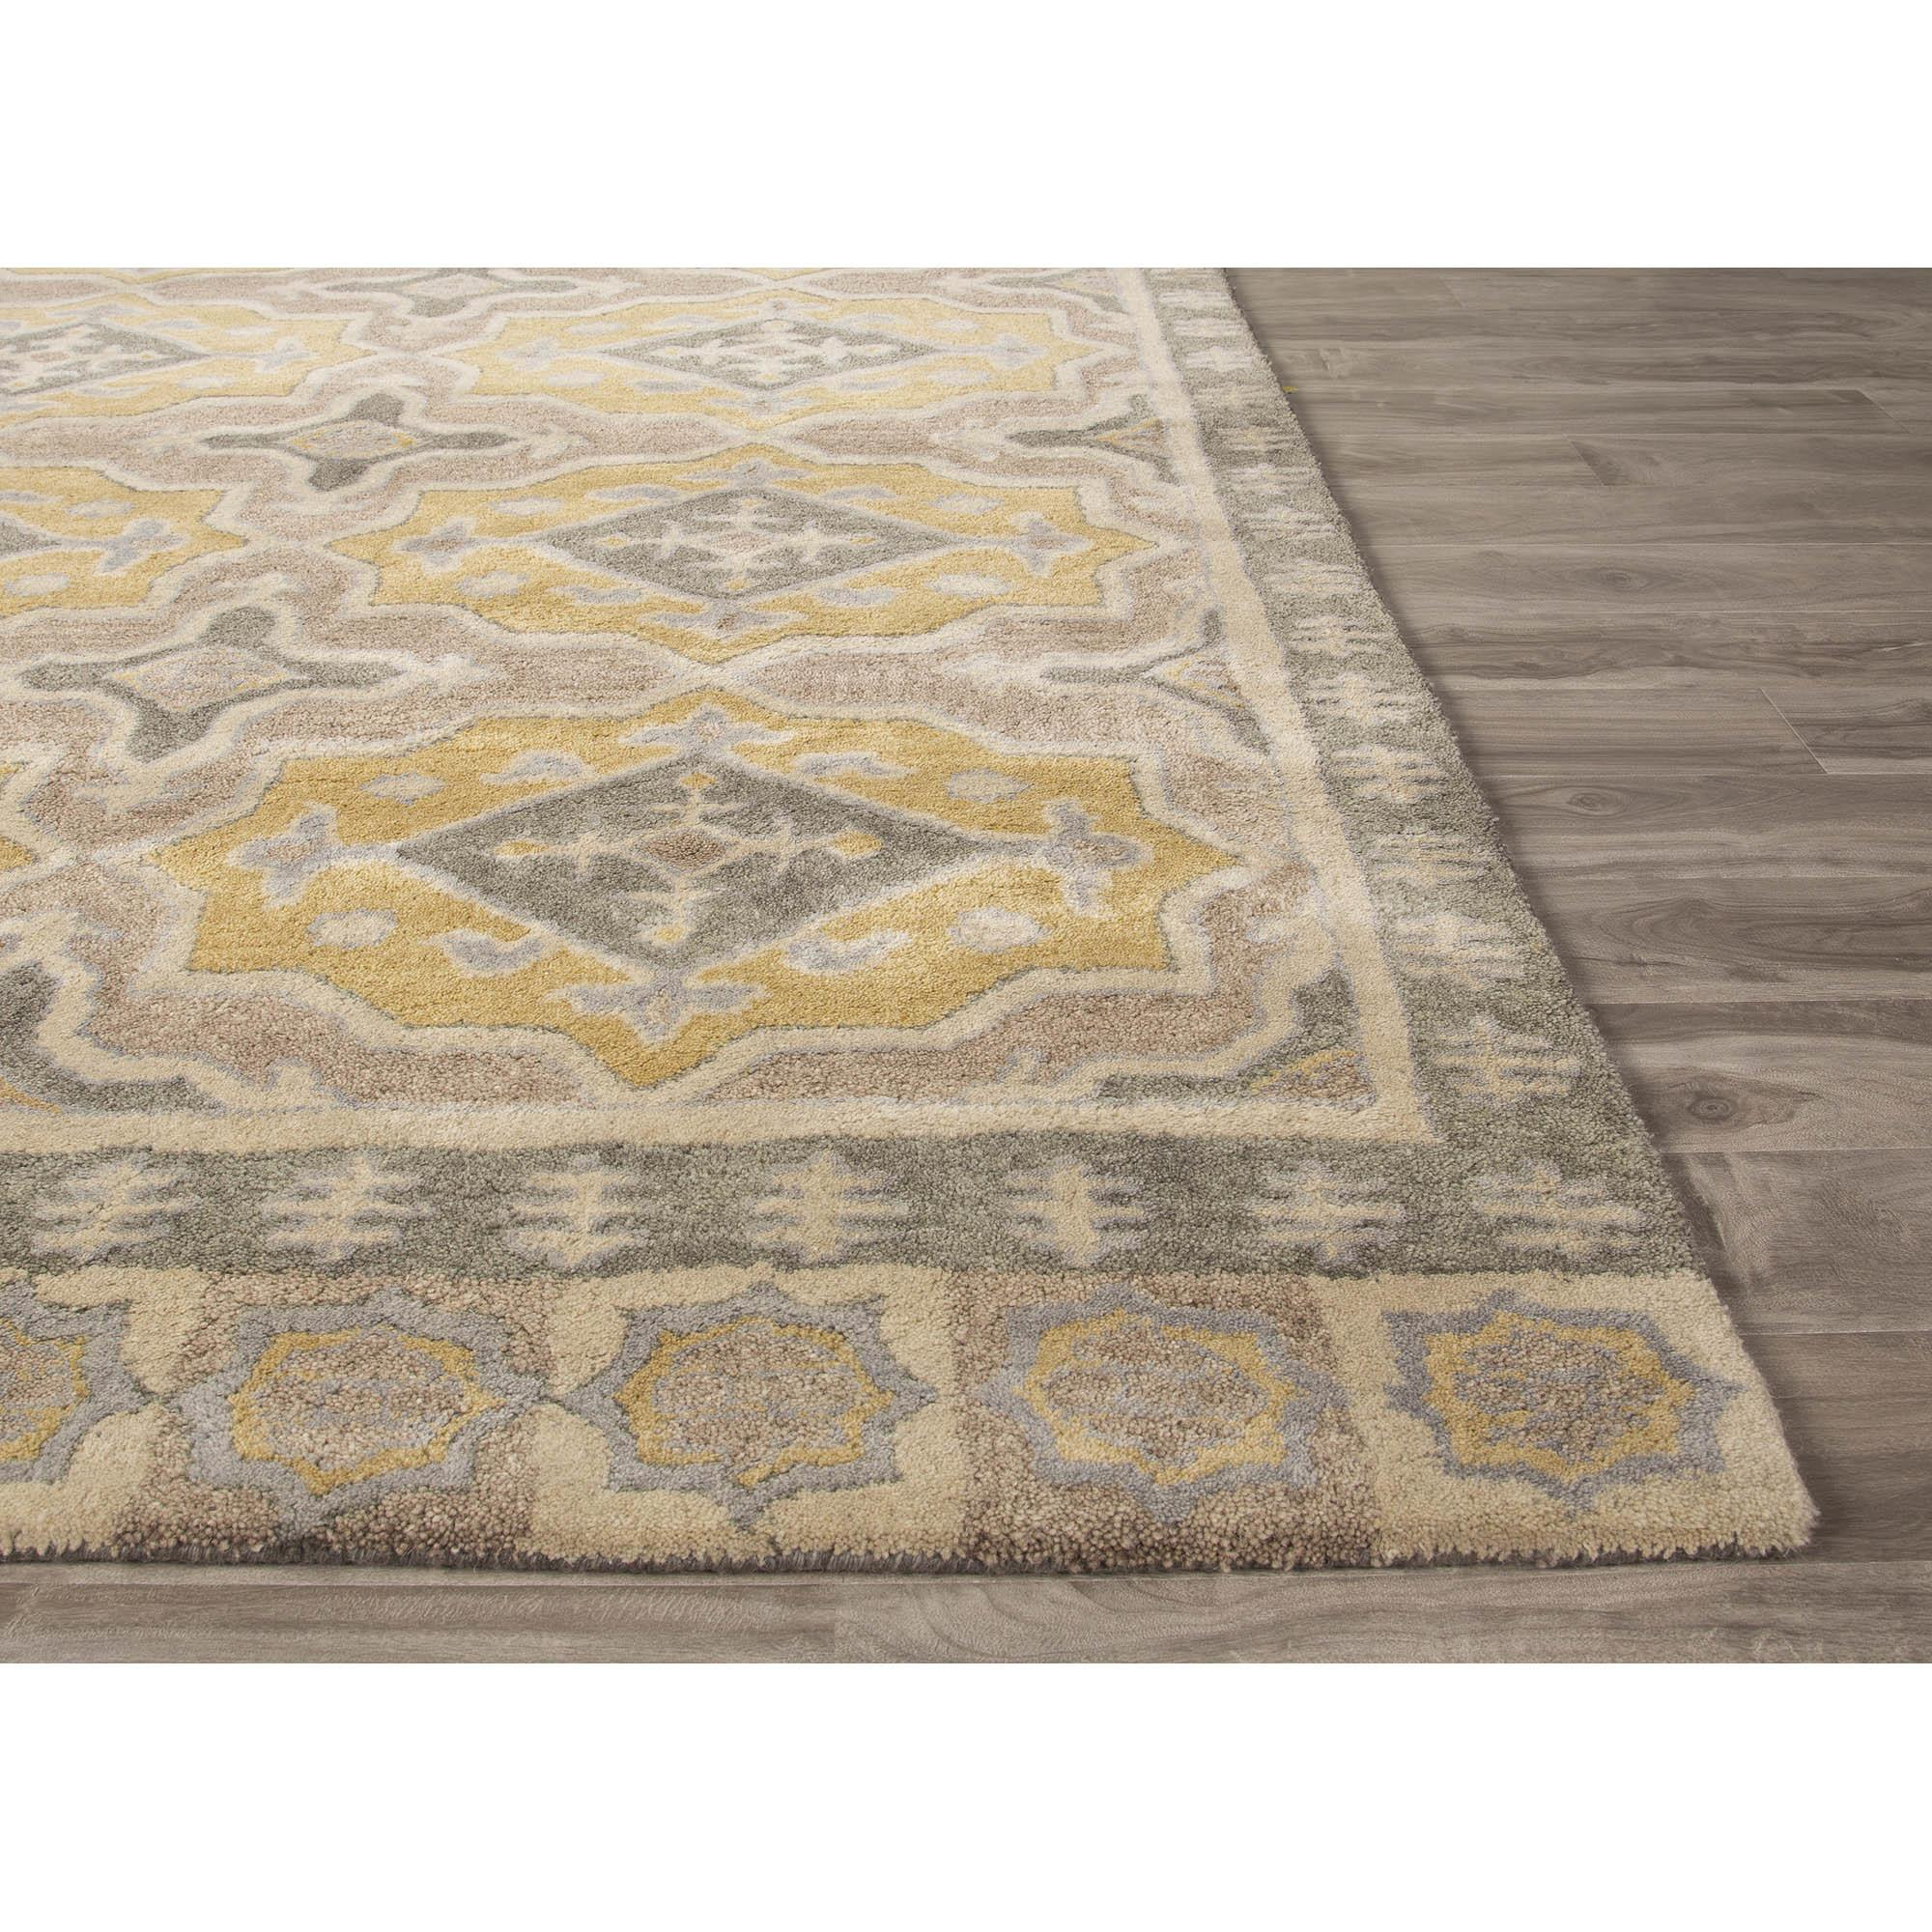 Jaipurliving Pendant Hand Tufted Gray Yellow Area Rug